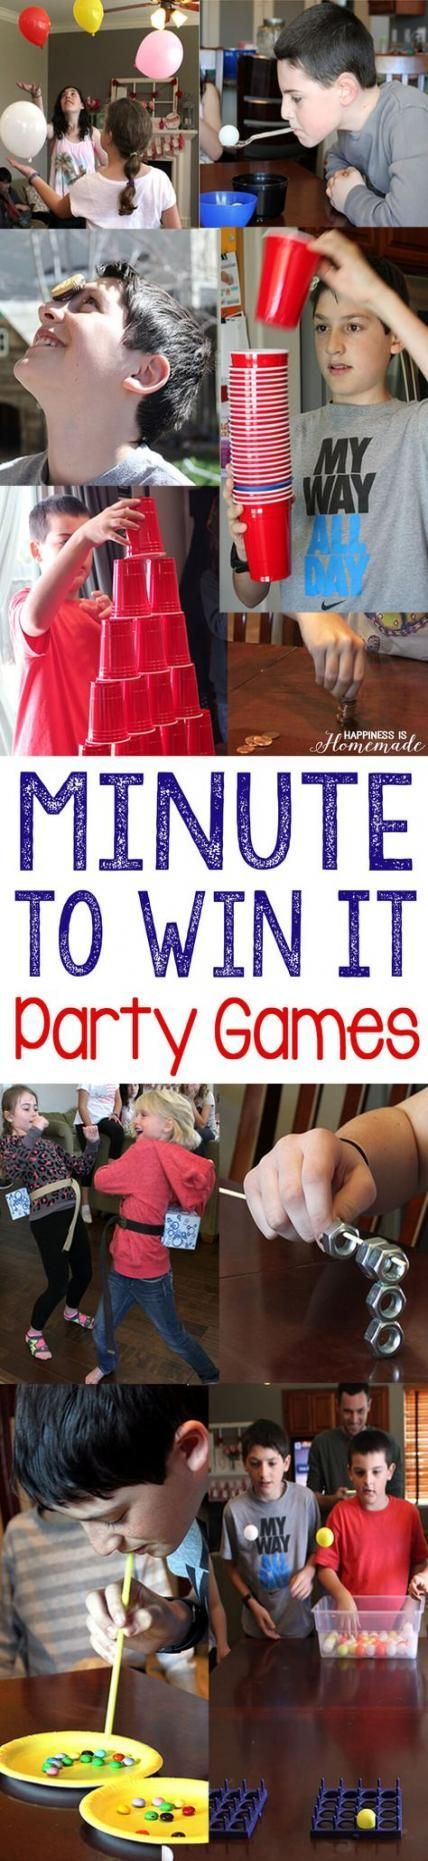 Balloon games for kids indoor activities minute to win it 63 Ideas for 2019